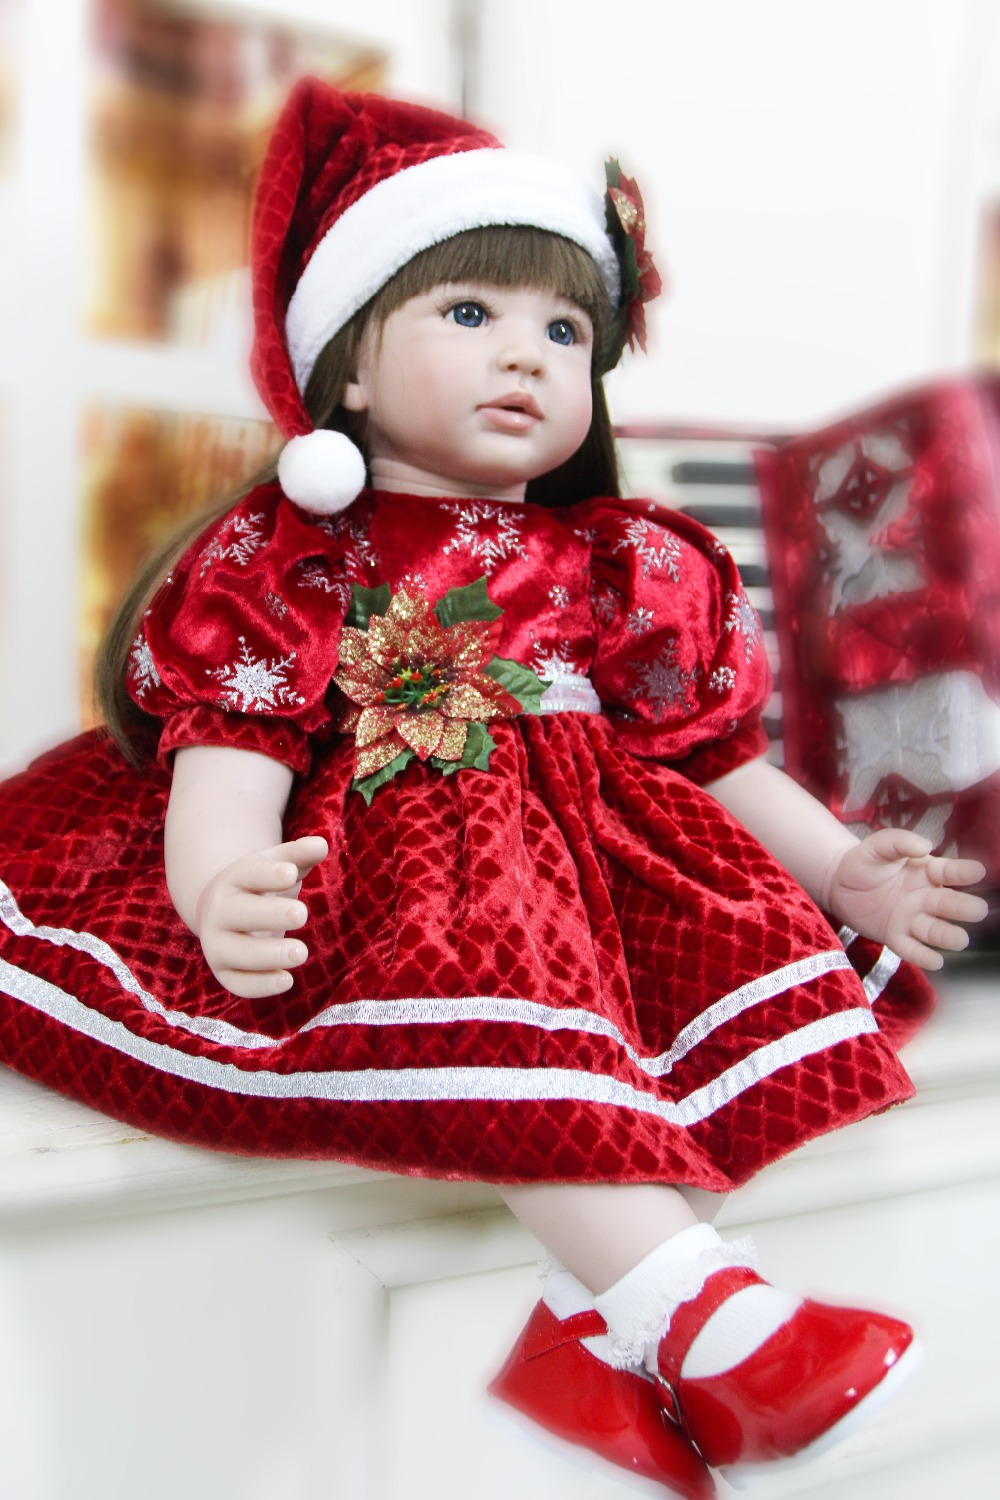 soft cotton Body Silicone Reborn Baby Girl Dolls 58cm Icy Doll Bebes Reborn Children Christmas princess doll Gifts Juguetes G14soft cotton Body Silicone Reborn Baby Girl Dolls 58cm Icy Doll Bebes Reborn Children Christmas princess doll Gifts Juguetes G14